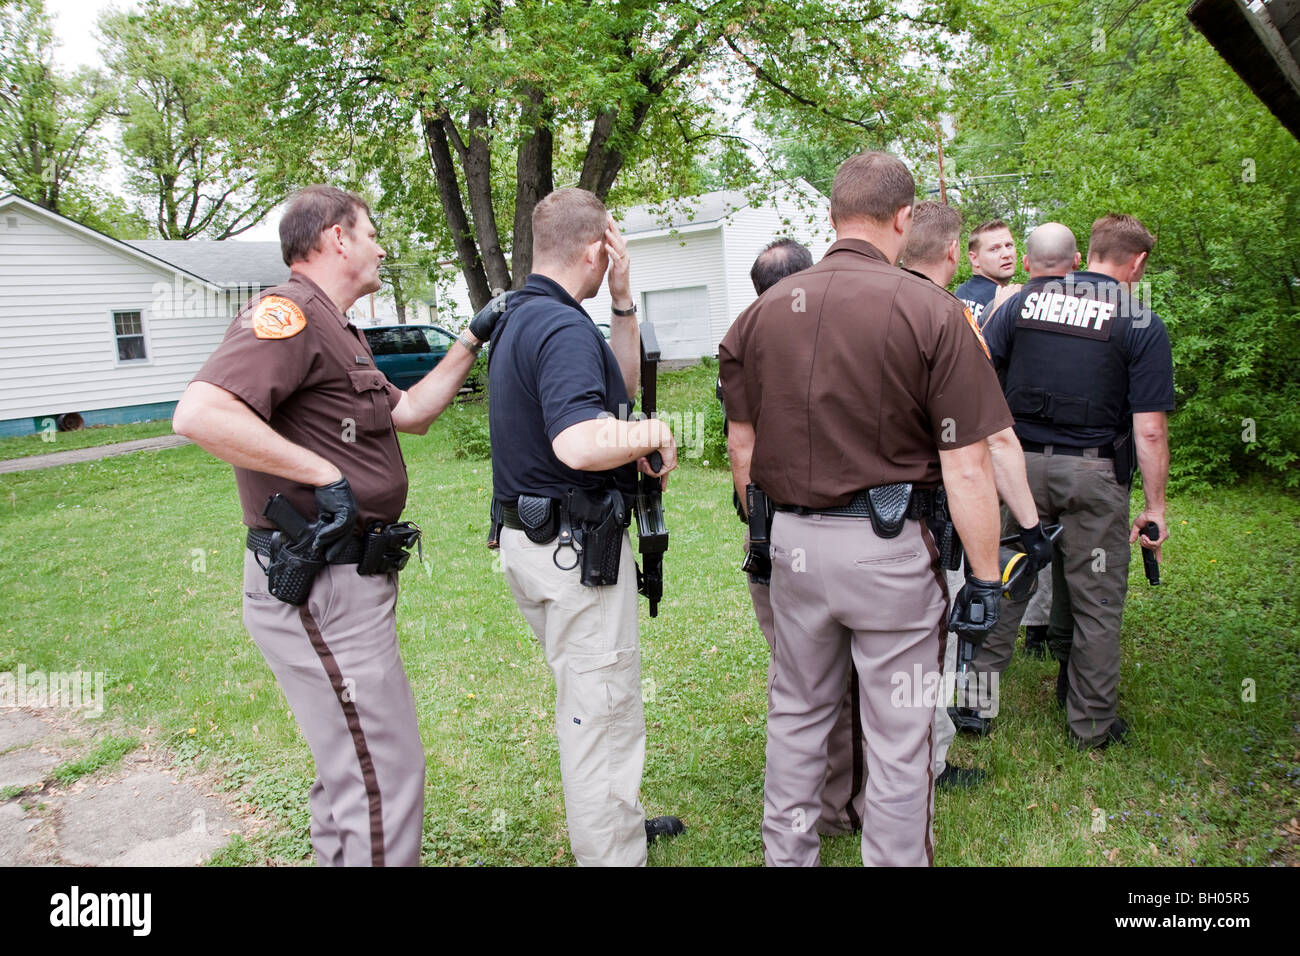 Serving Search Warrant Stock Photos & Serving Search Warrant